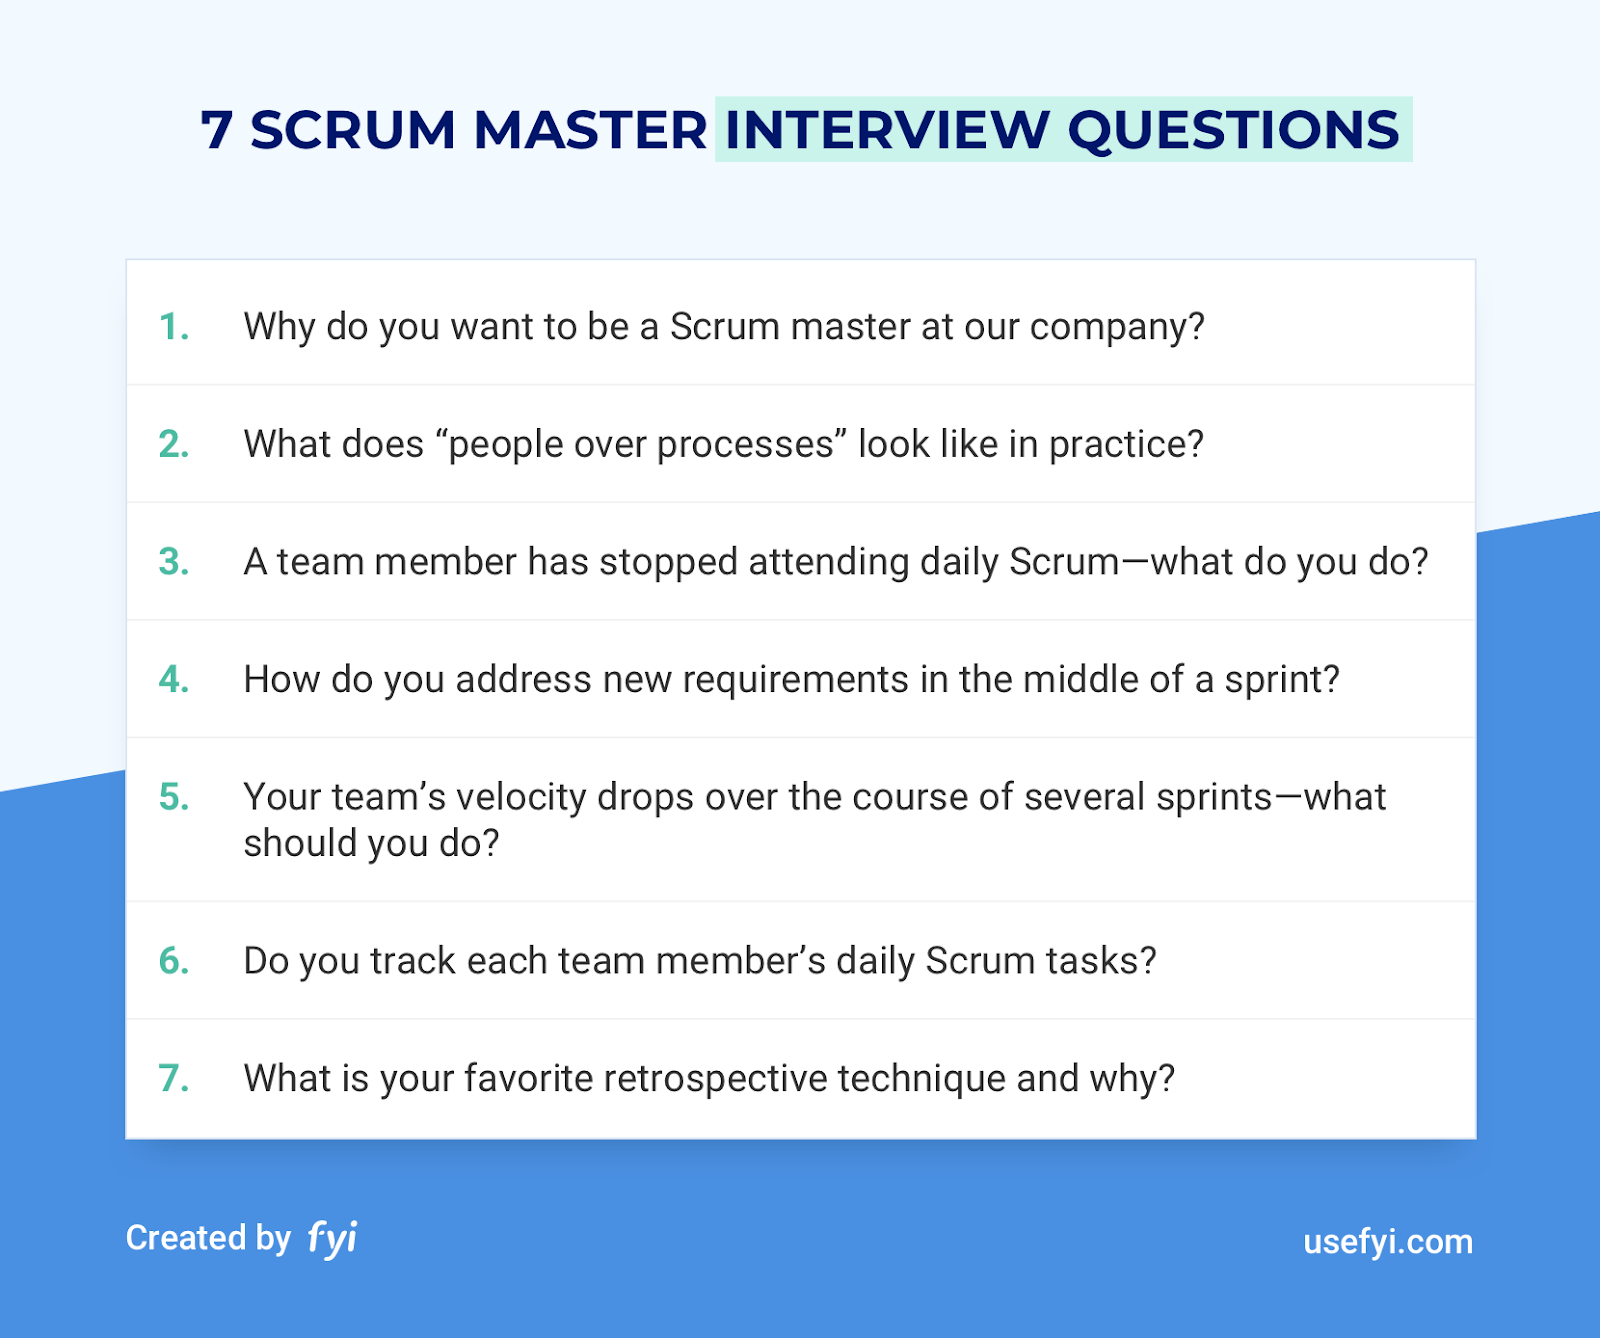 7 key Scrum Master Interview Questions